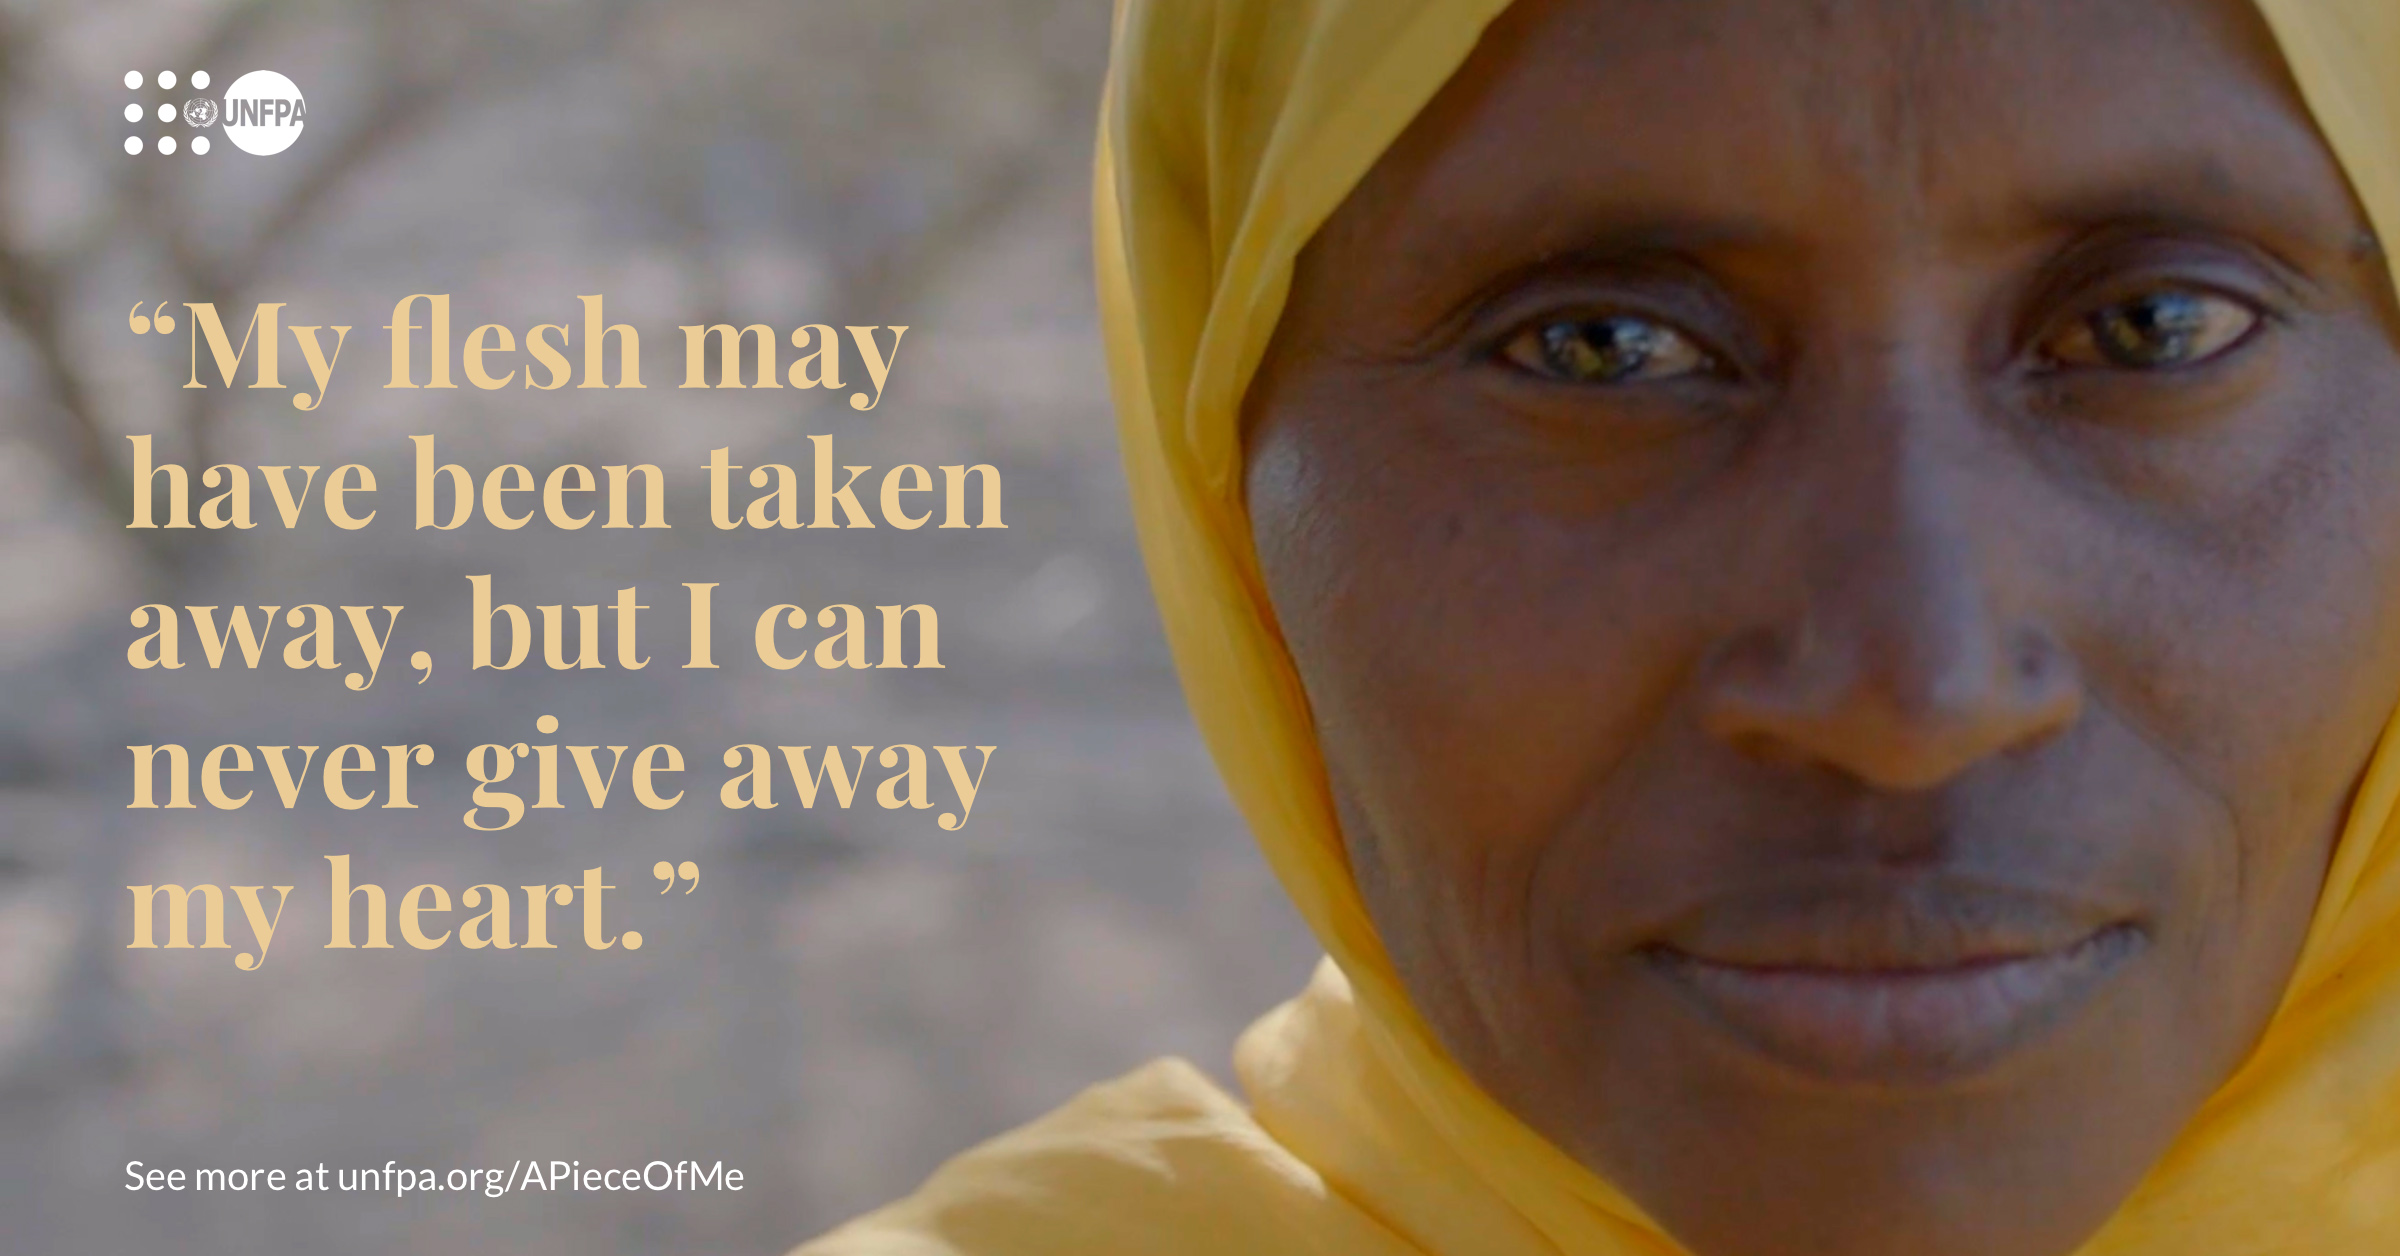 No matter what they took when she suffered female genital mutilation (FGM), she didn't lose her will to live. #SeeAPieceOfMe to hear Abida's moving story: unf.pa/Abida #EndFGM